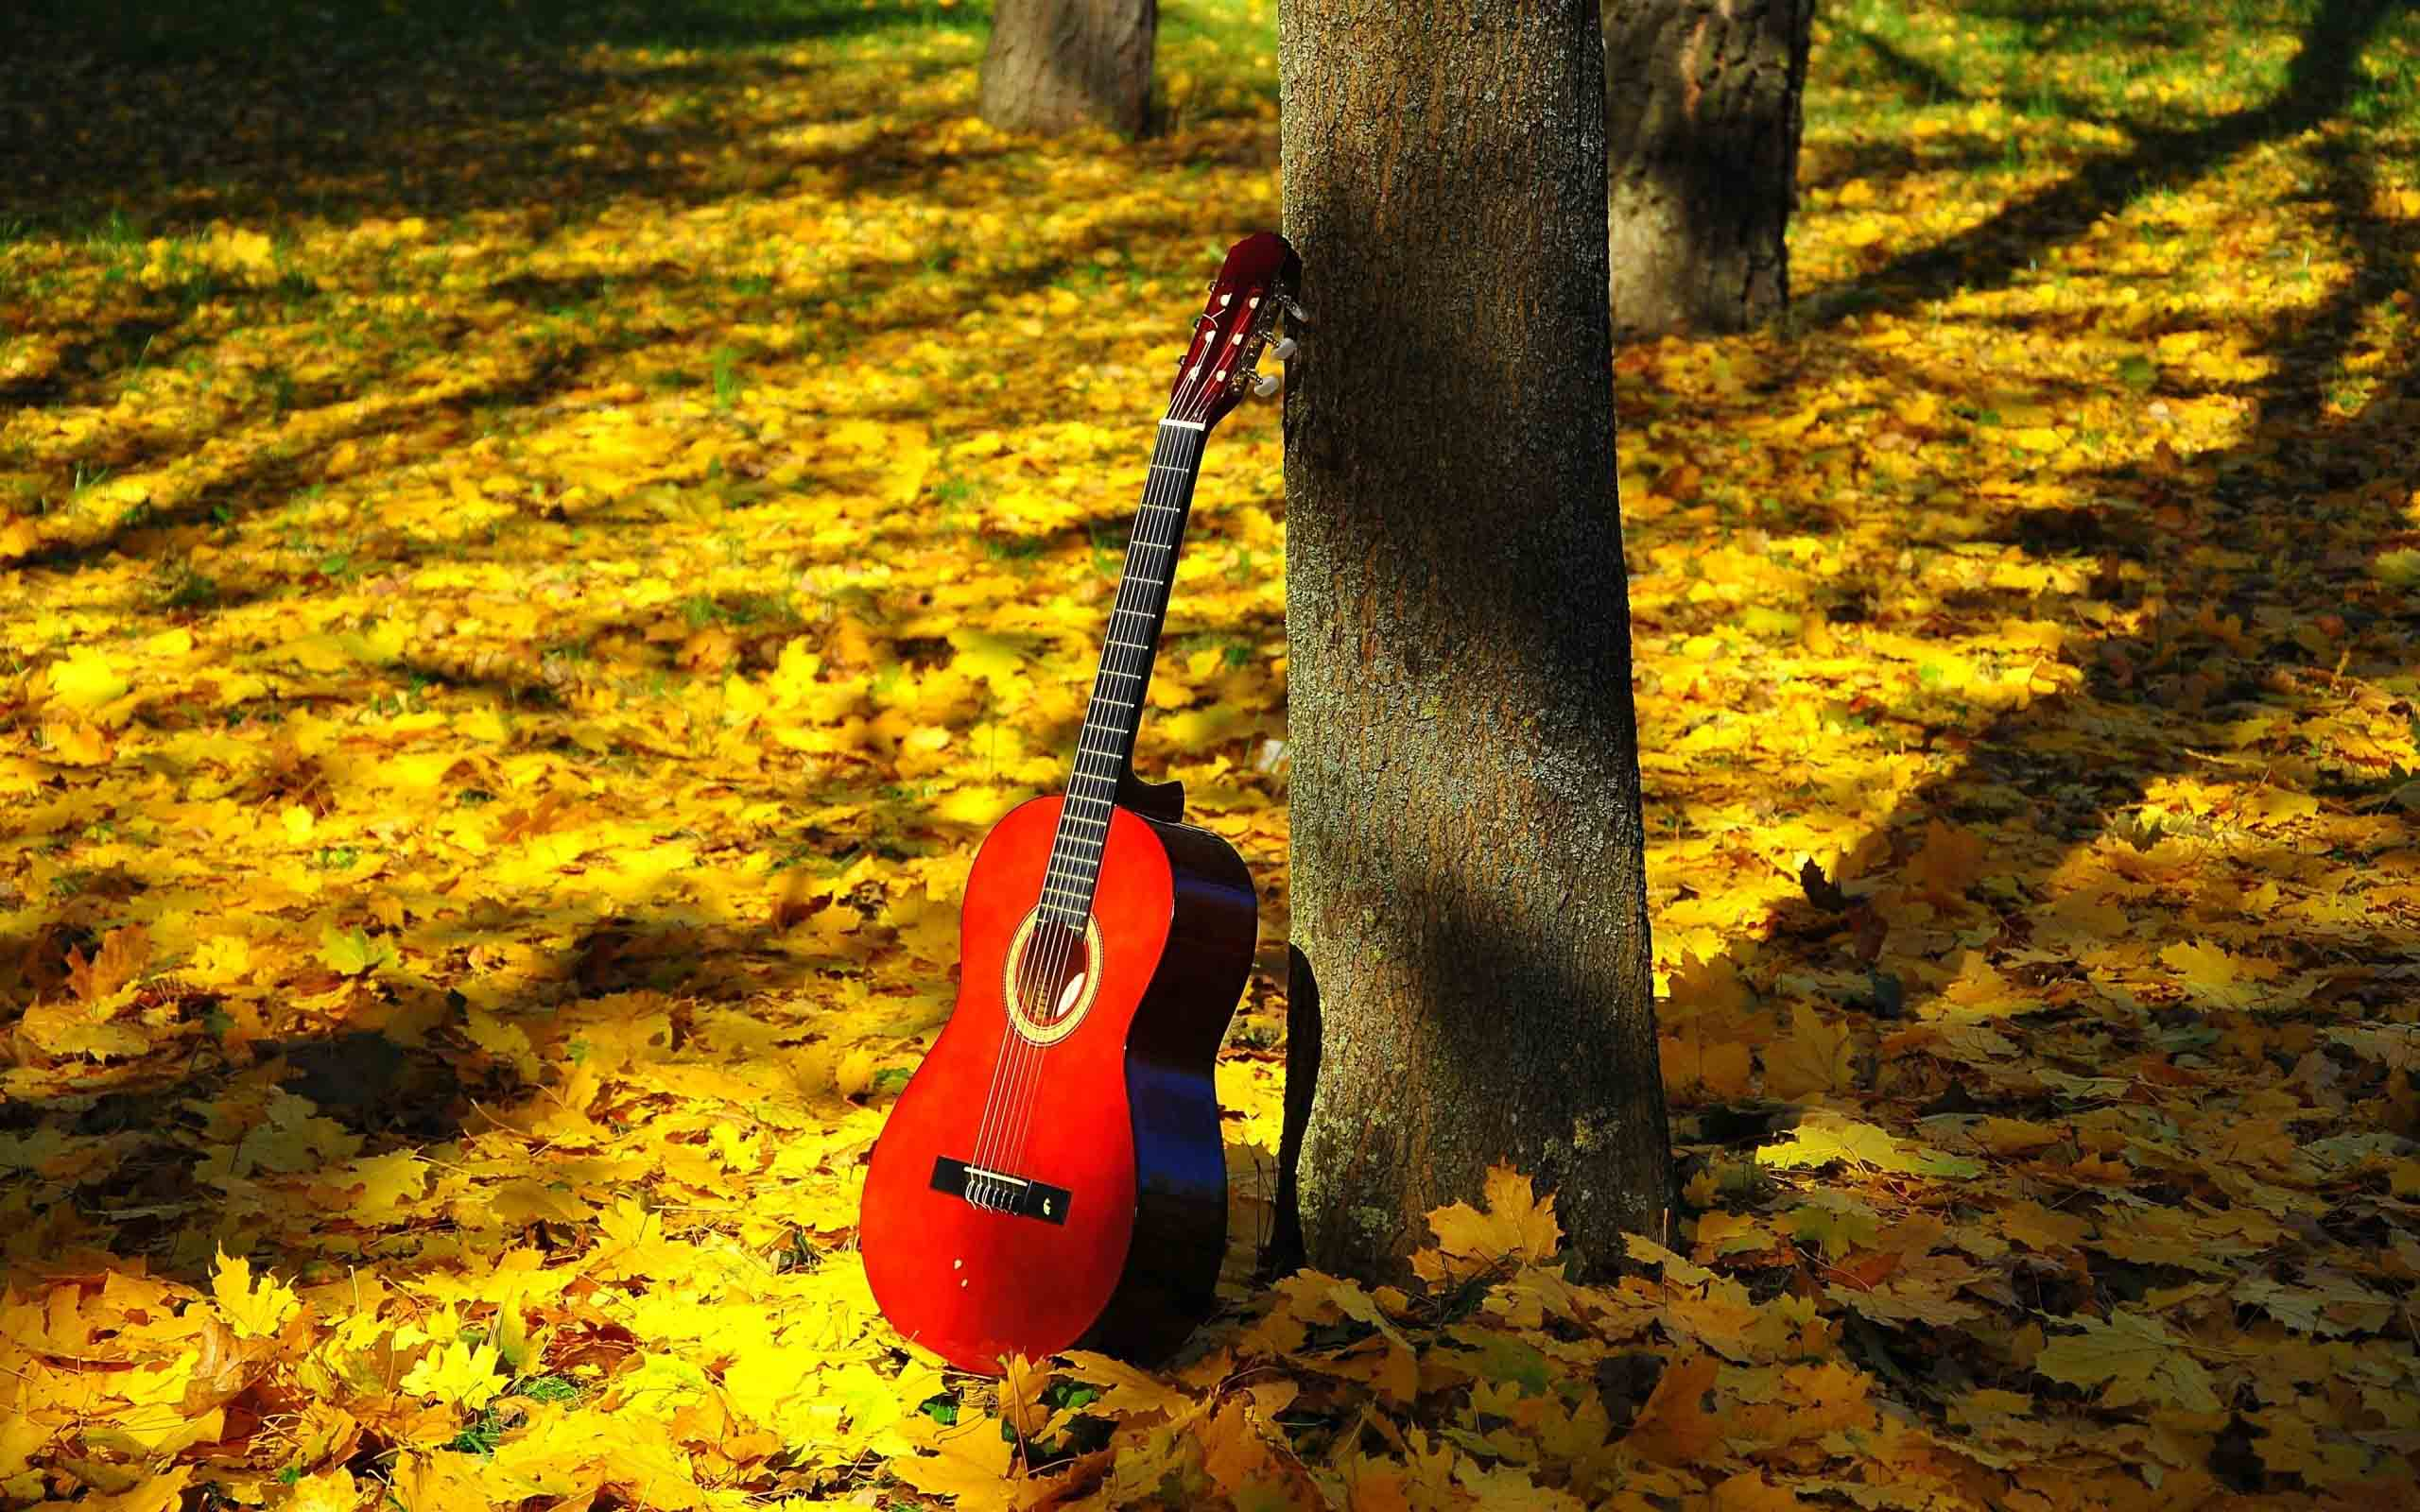 Wallpaper download new latest - Latest Guitar Hd New Wallpapers Free Download Hd Free Wallpapers